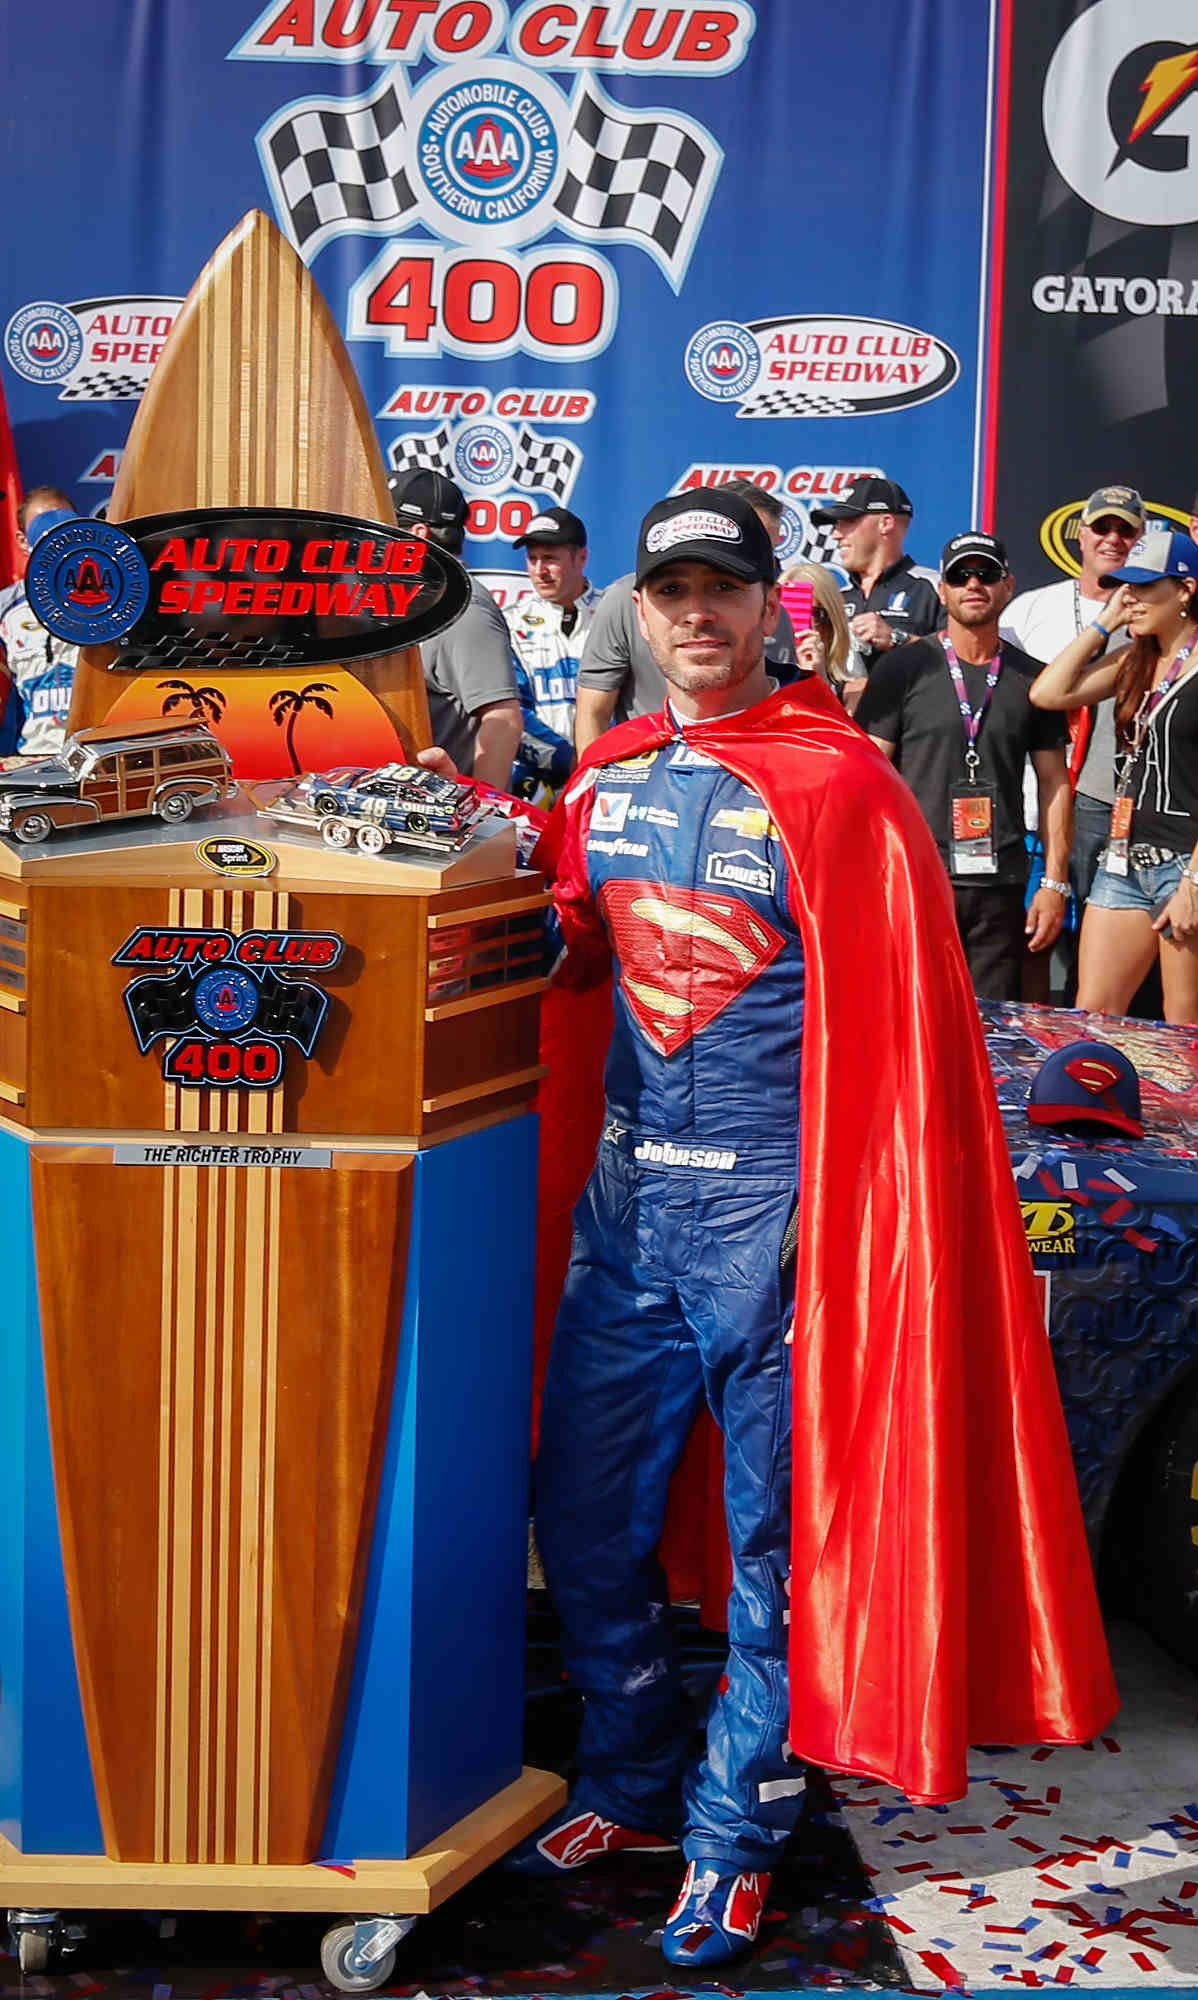 Jimmie Johnson, driver of the #48 LoweÕs/Superman Chevrolet SS, celebrates his 77th career victory Sunday, March 20, 2016 in the NASCAR Sprint Cup Series race at Auto Club Speedway in Fontana, California.  (Photo by Gregg Ellman for Chevy Racing)